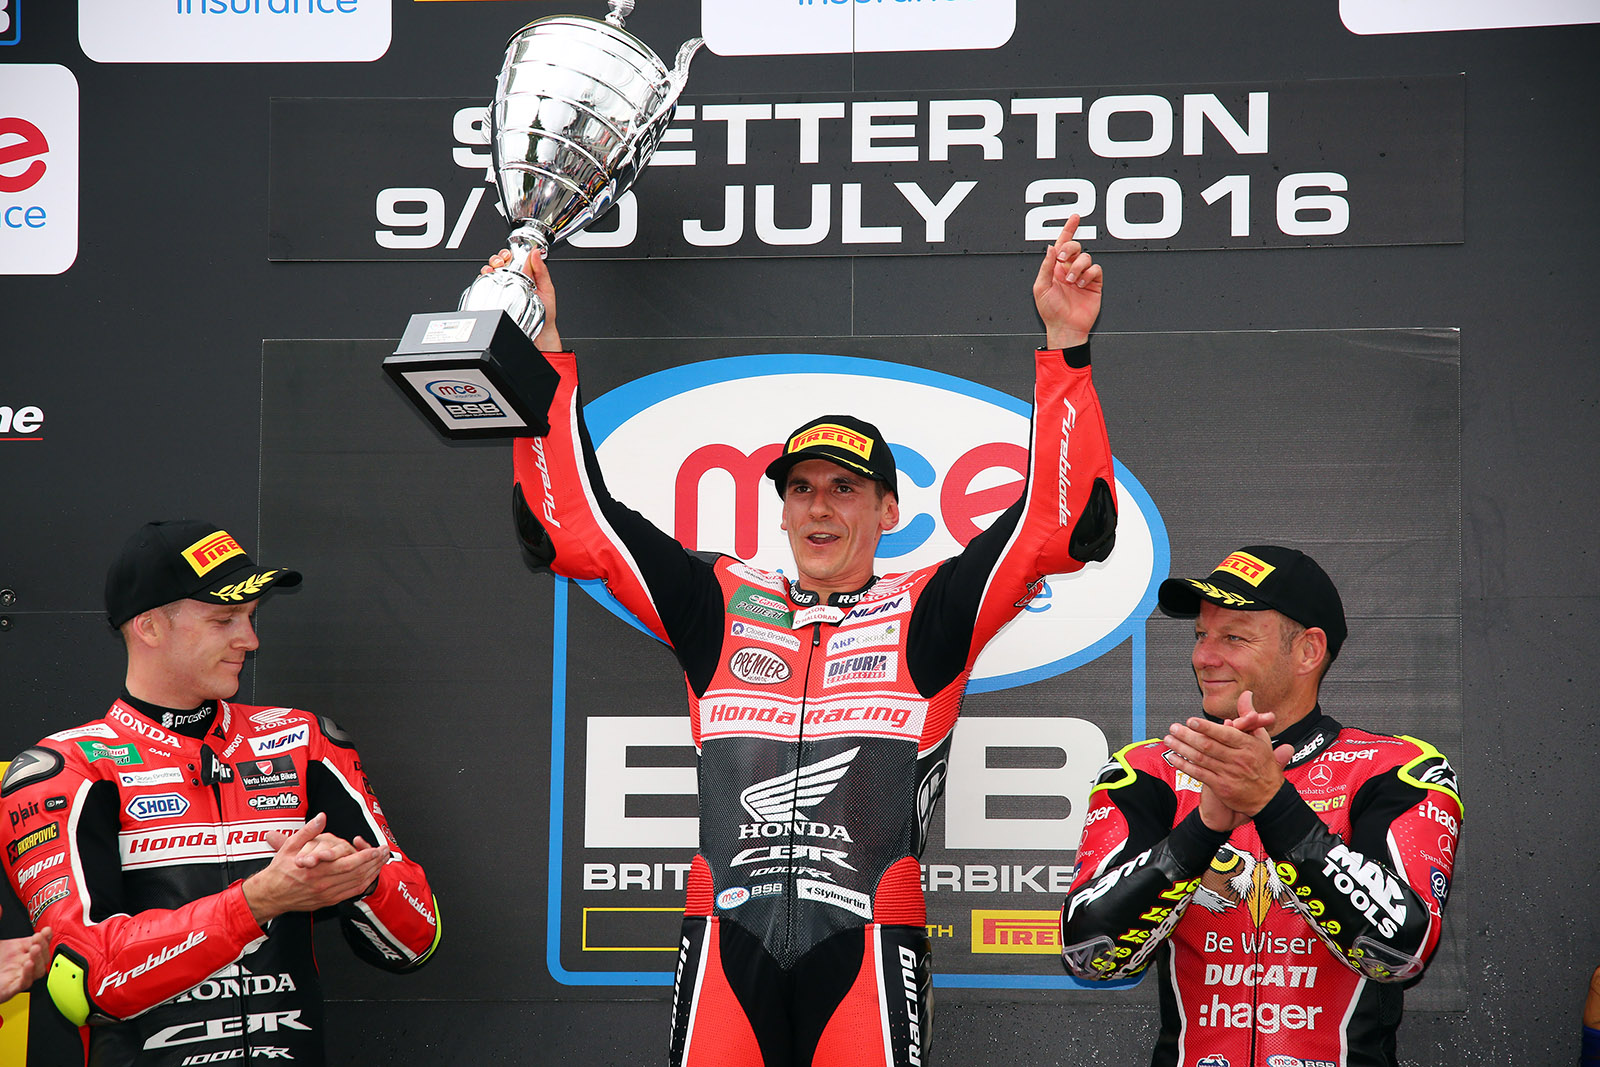 2016 British Superbike Championship, BSB R05, Snetterton, Norfolk. 10th July 2016. Jason O'Halloran, Australia, Honda Racing wins race 1 from Dan Linfoot, Knaresborough, Honda Racing and Shane Byrne, Sittingbourne, Be Wiser Ducati who came from last on lap one